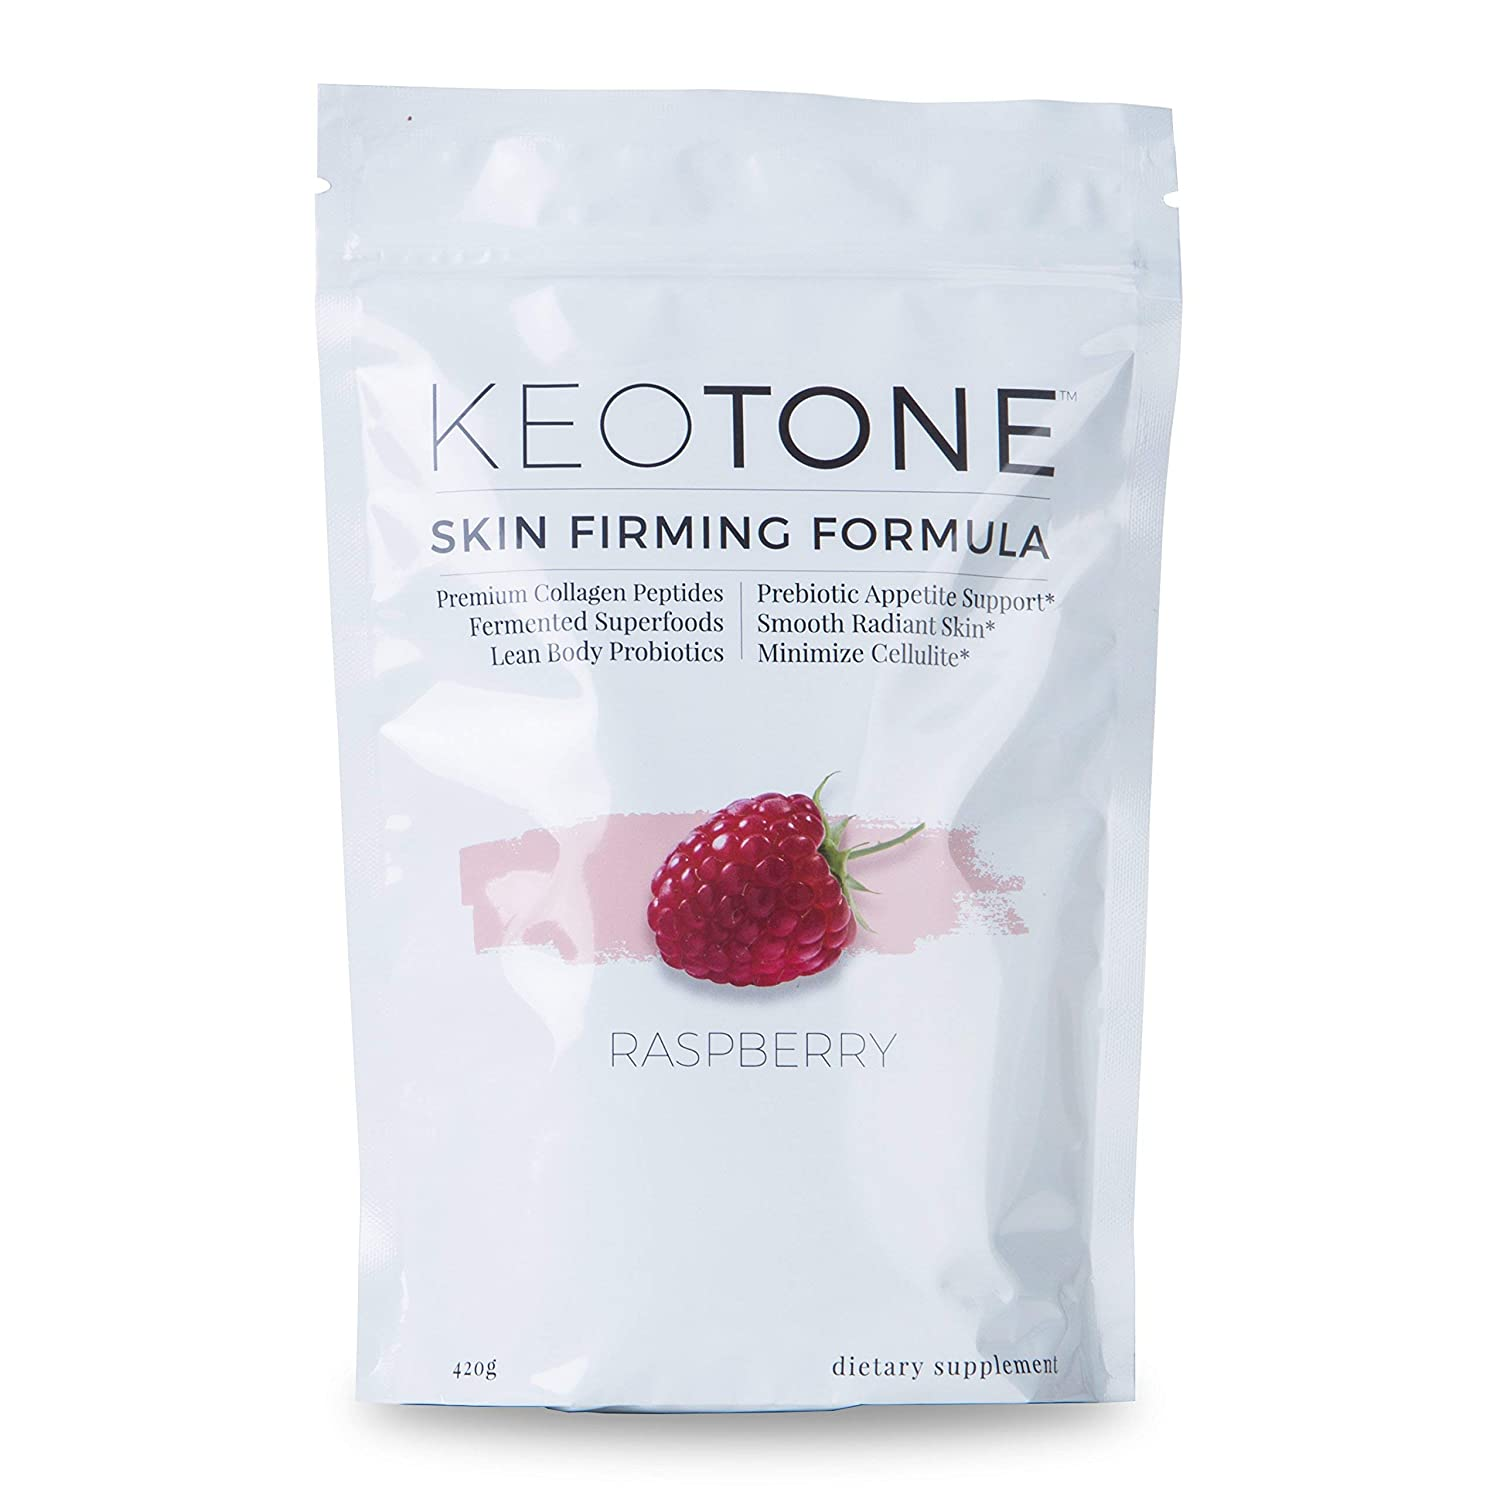 KEOTONE - Probiotic Appetite Support with Beauty Formula (Raspberry)